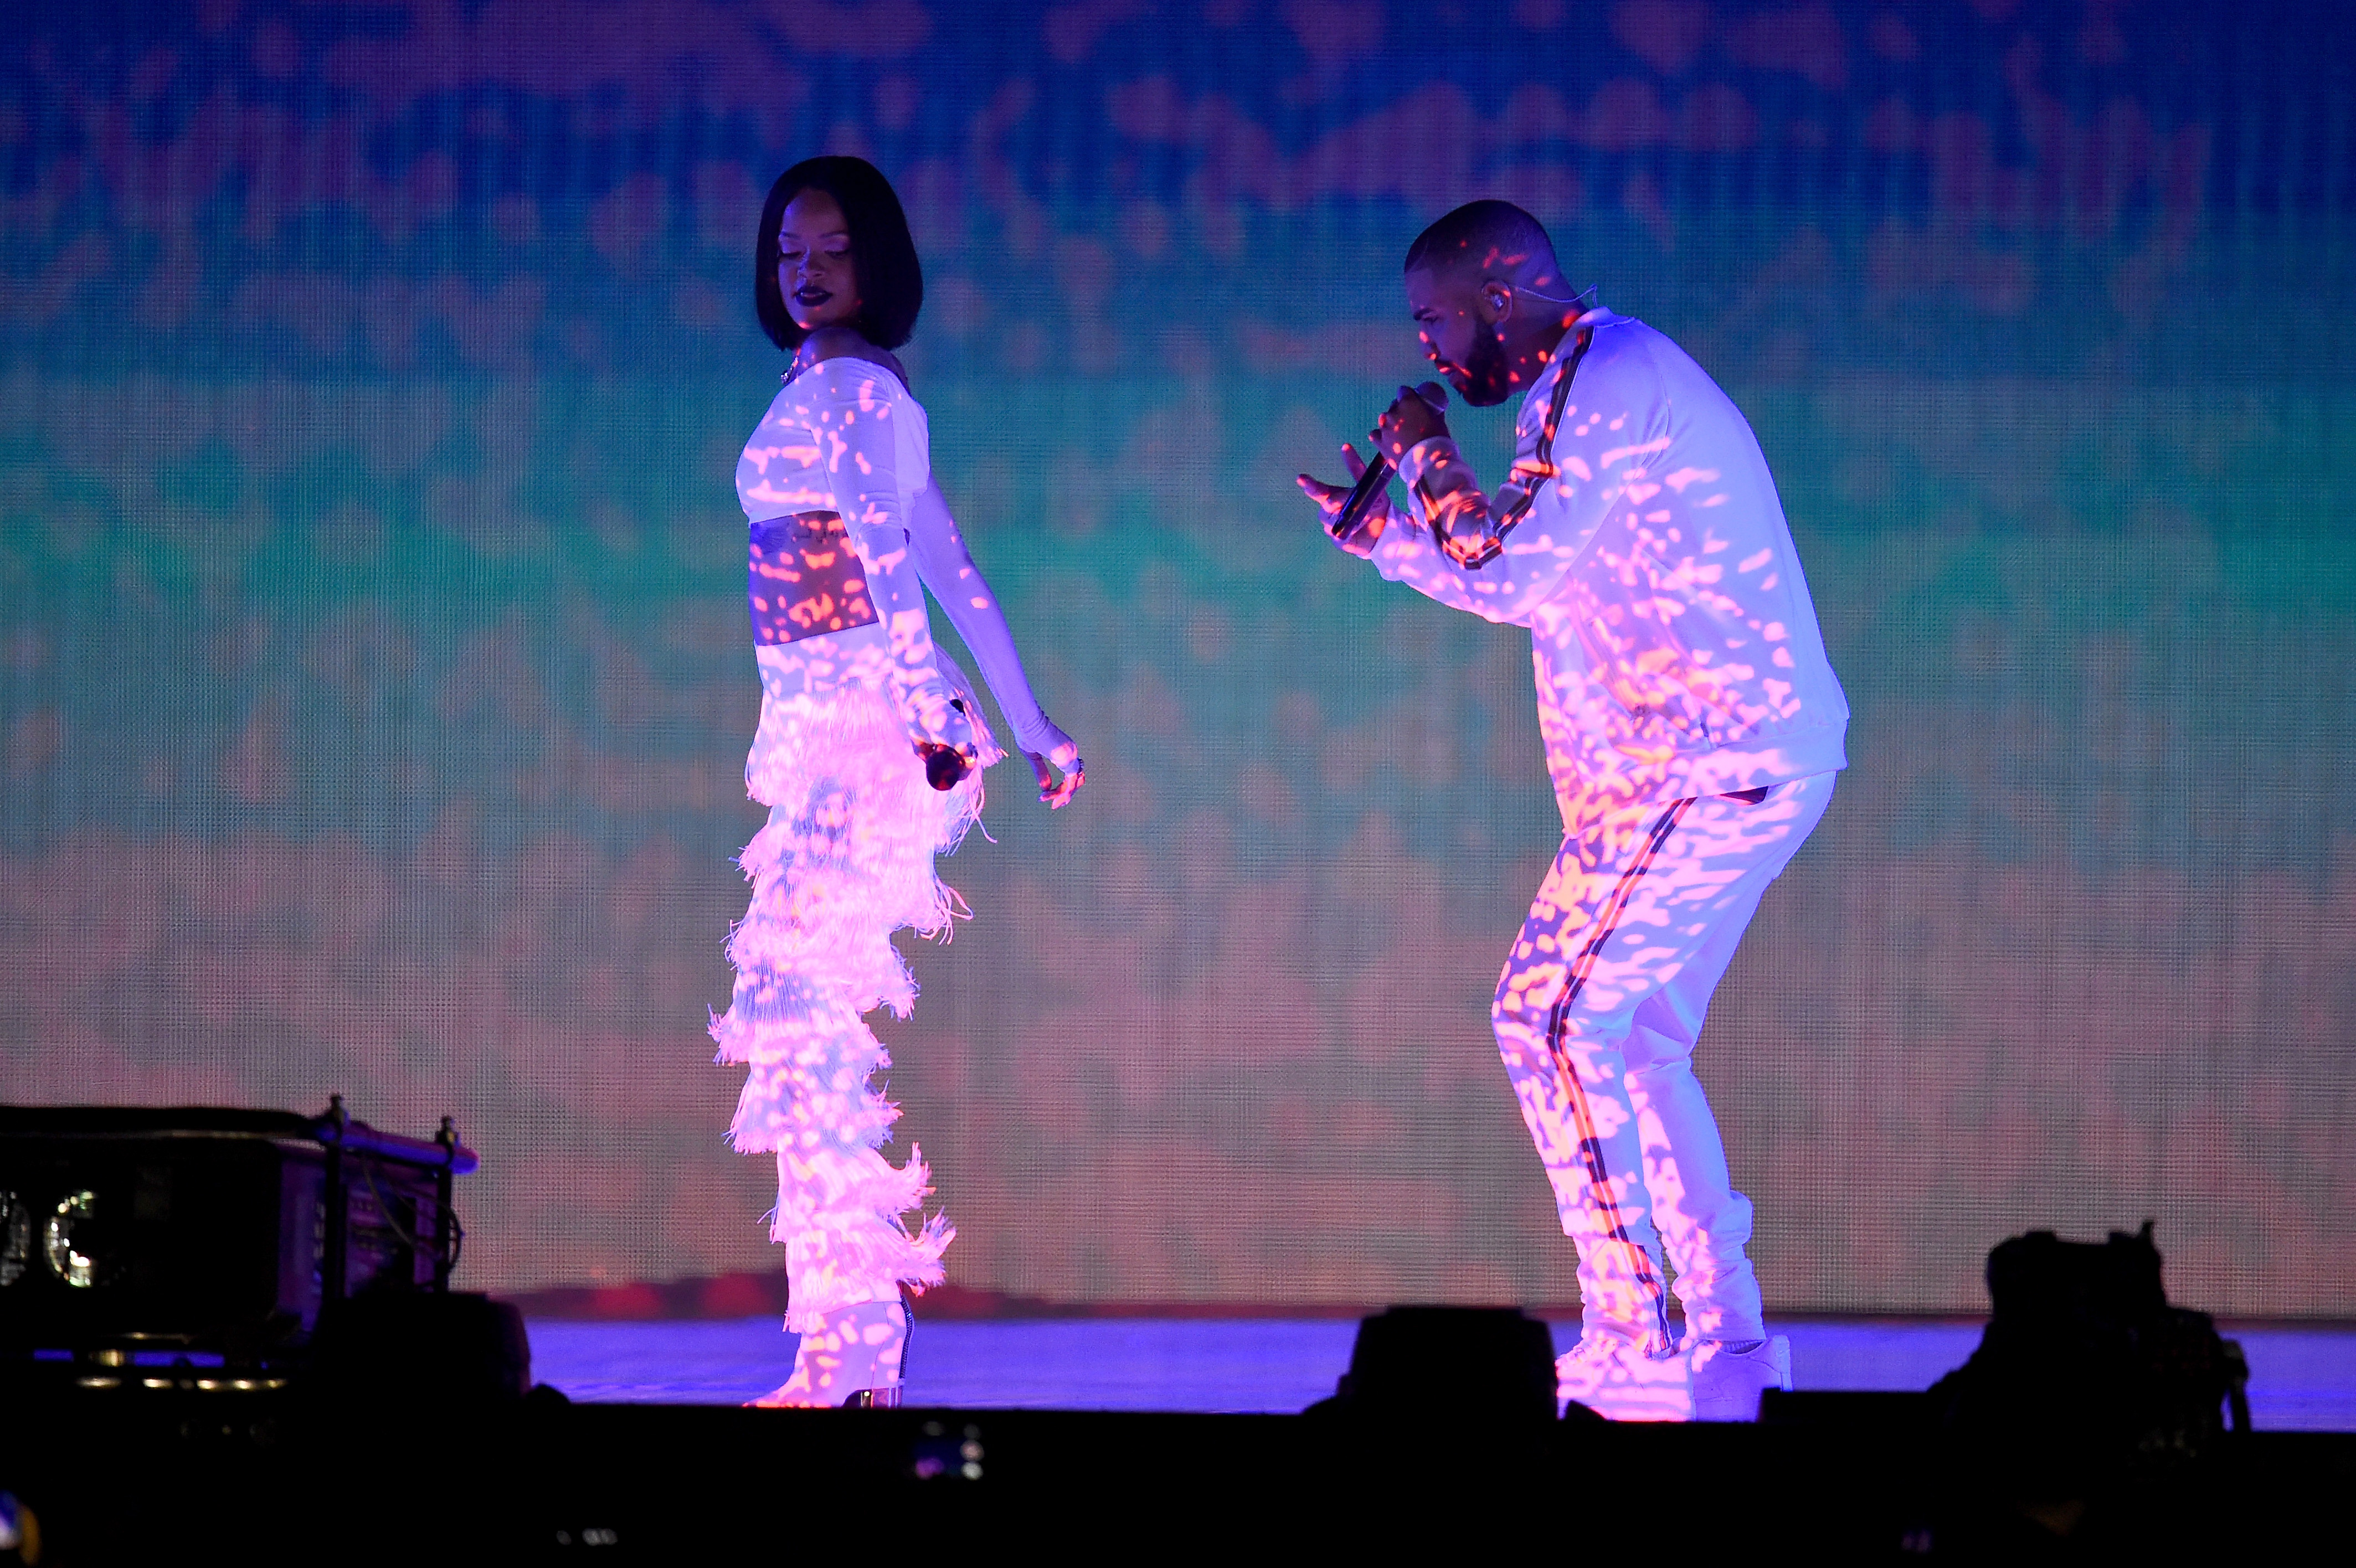 Rihanna and Drake perform at the BRIT Awards on February 24, 2016 in London, England. (Photo by Ian Gavan/Getty Images)